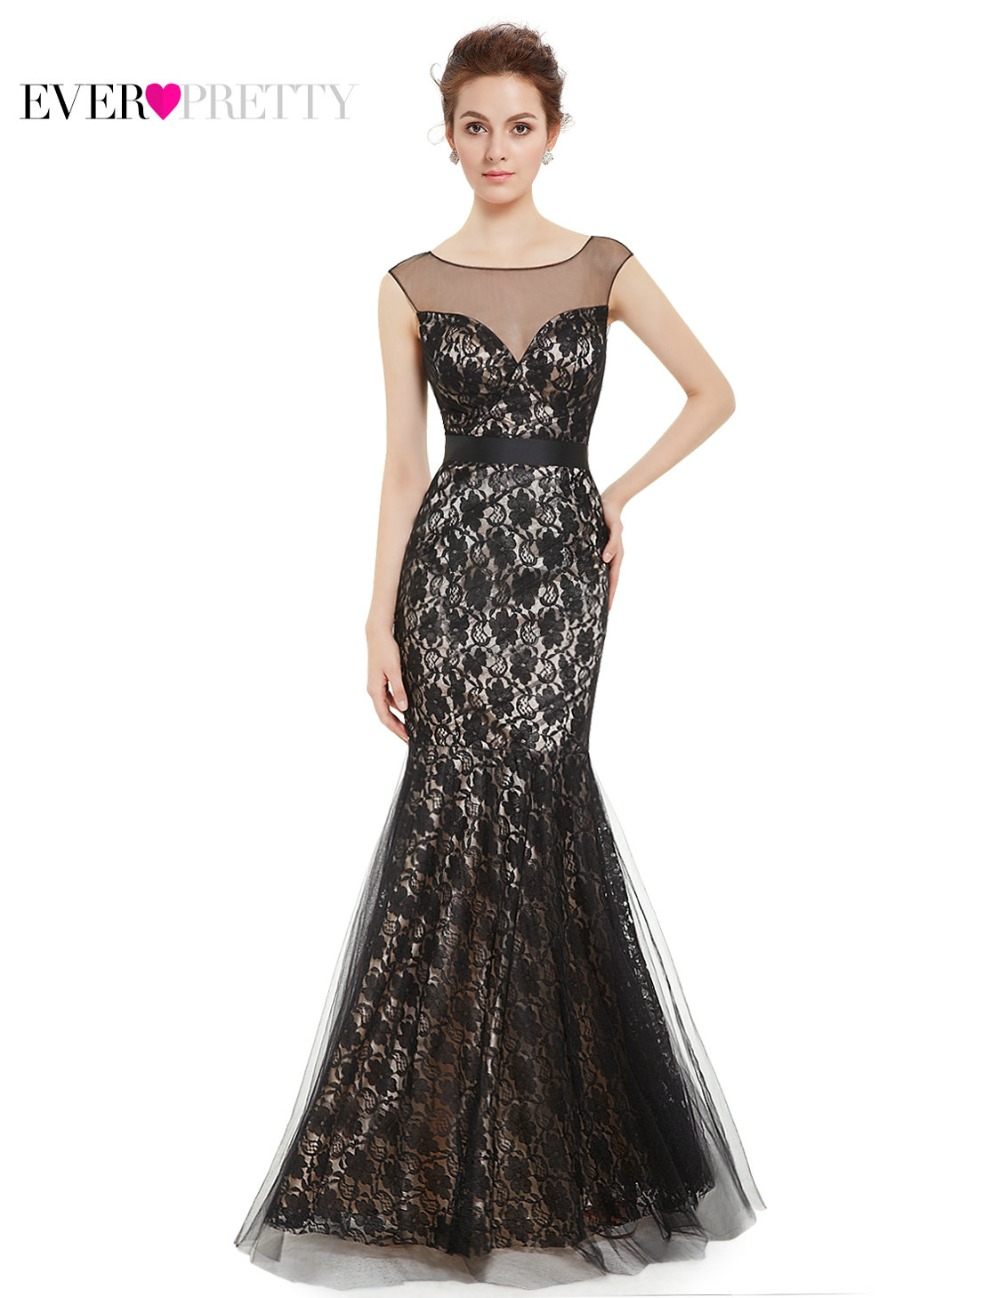 Clearance Sale] Prom Dresses Women Elegant Ruched Bust Wedding ...